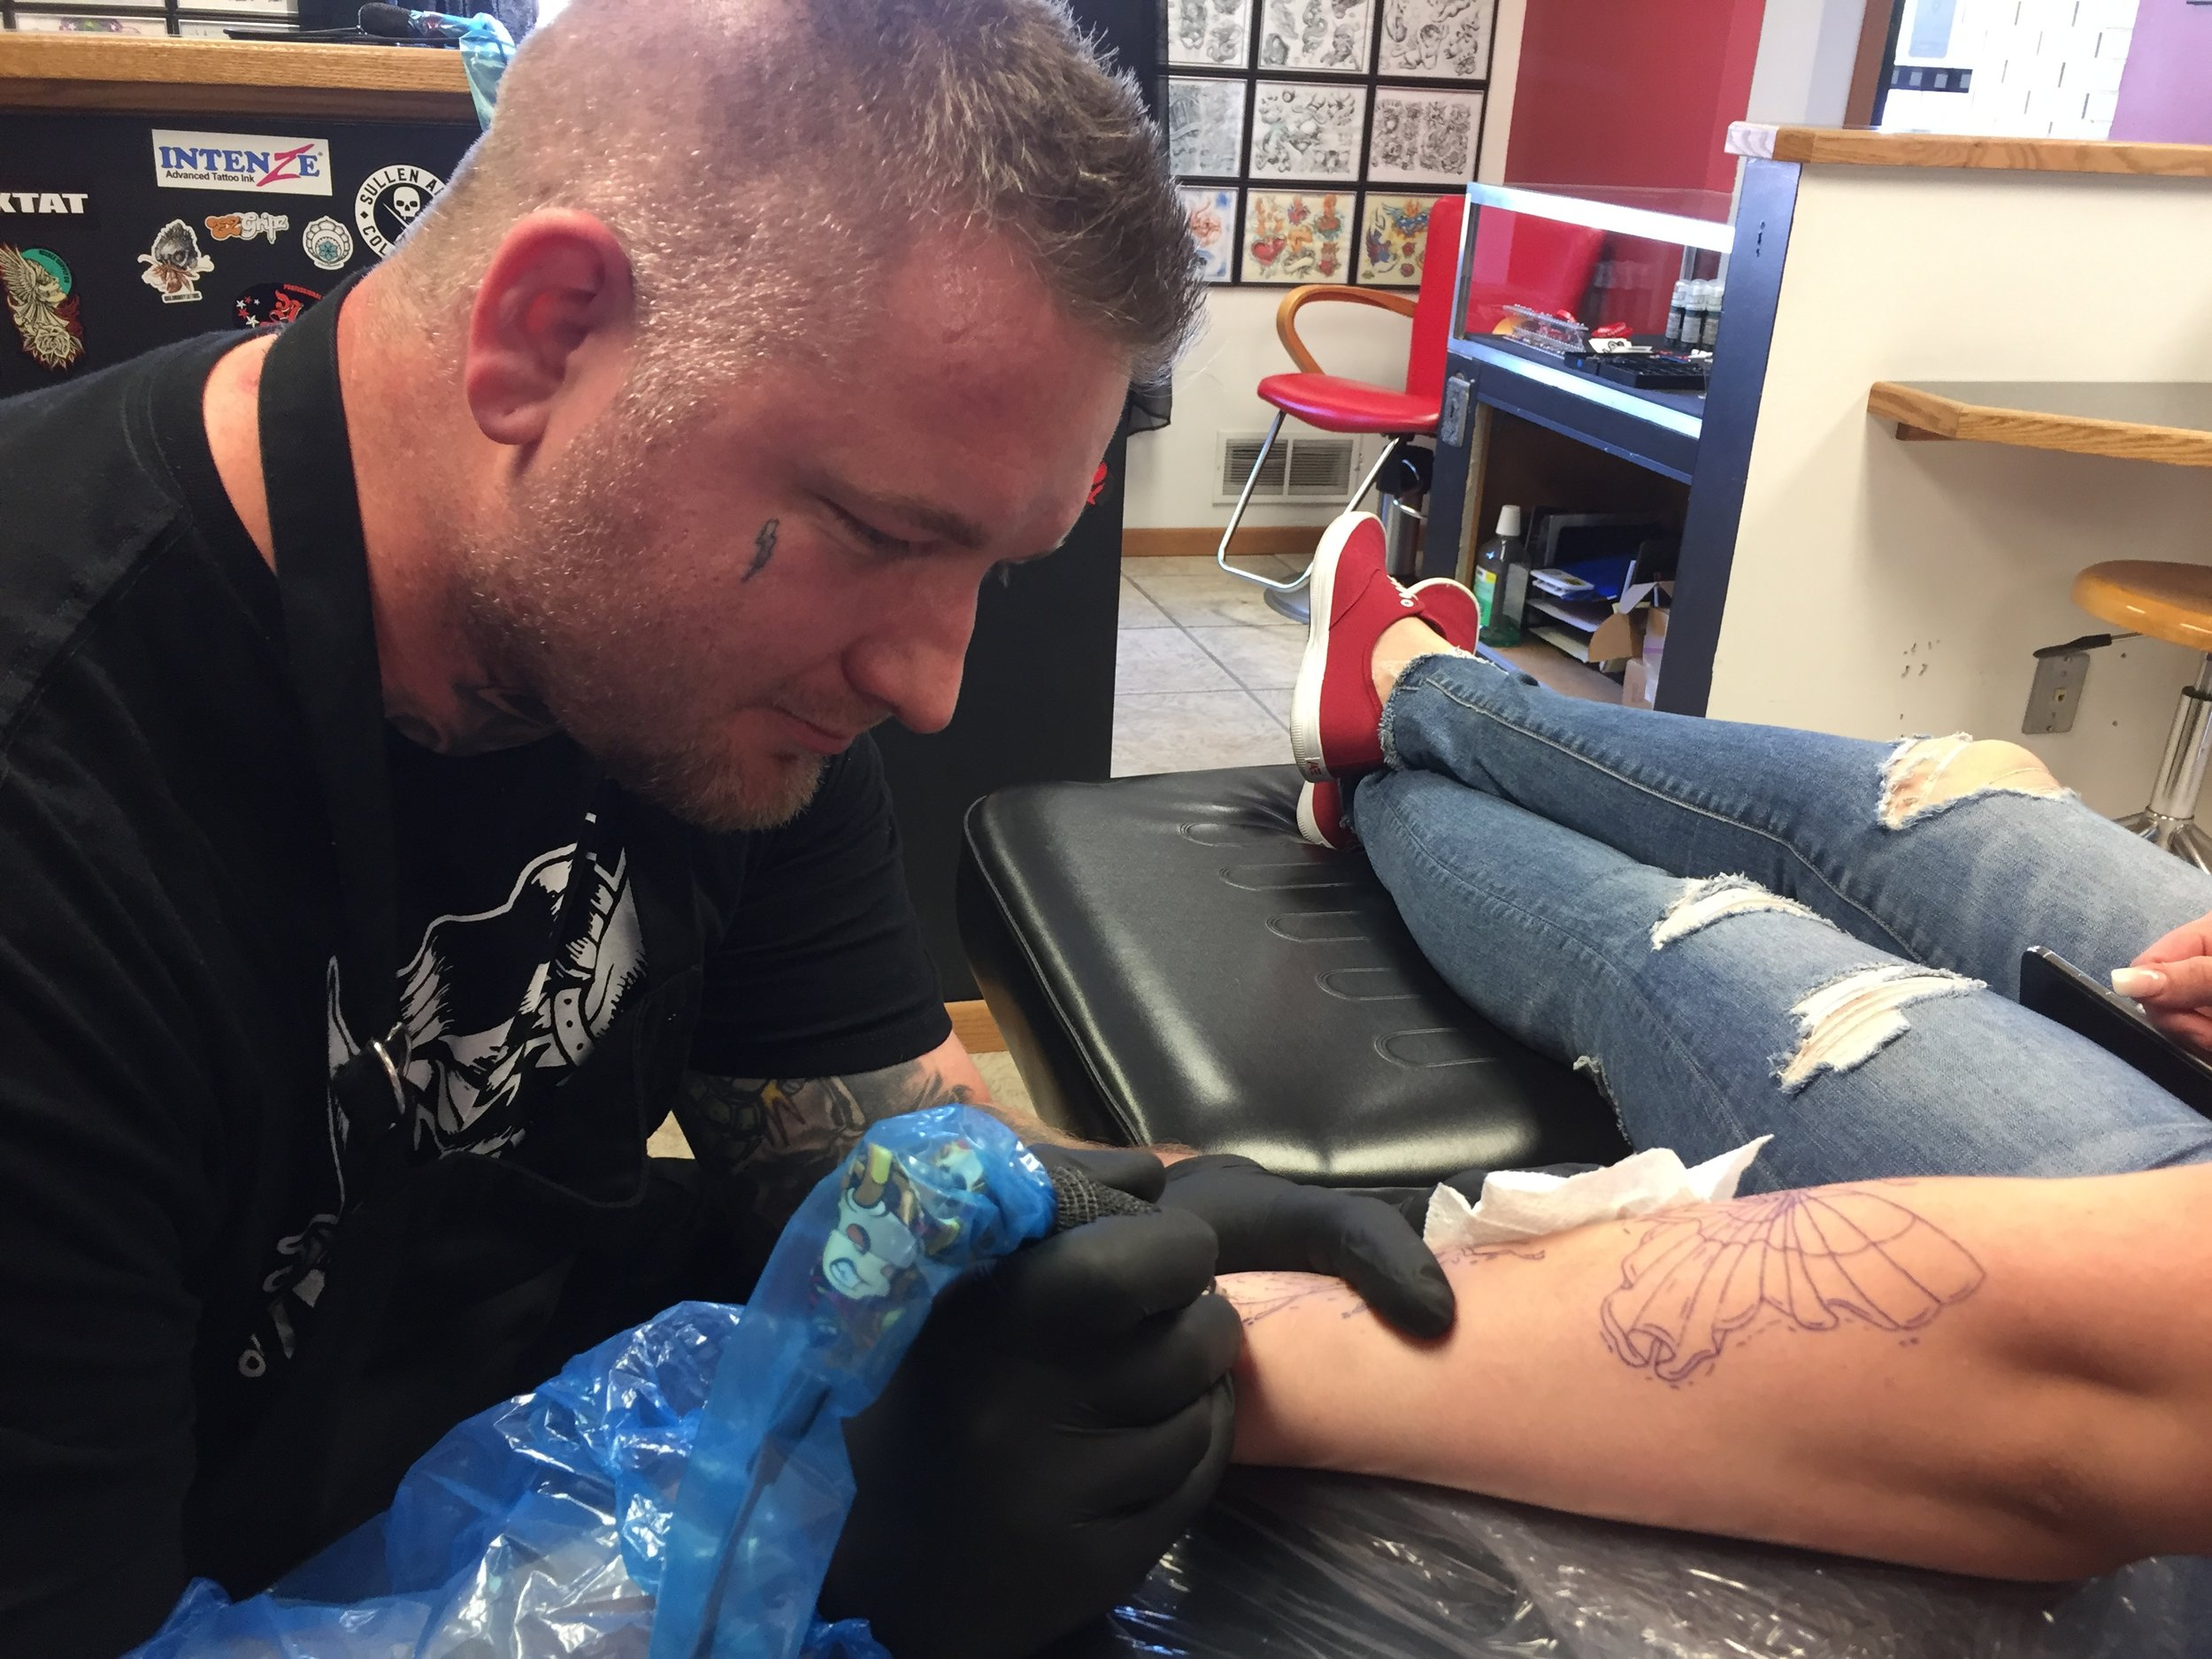 Aaron Klingensmith - Aaron is an award winning artist tattooing consistently for about 3 years . He tattoos vast array of styles from bright bold neotraditional to fine line black and grey/realism . Click his photo to check out his work!